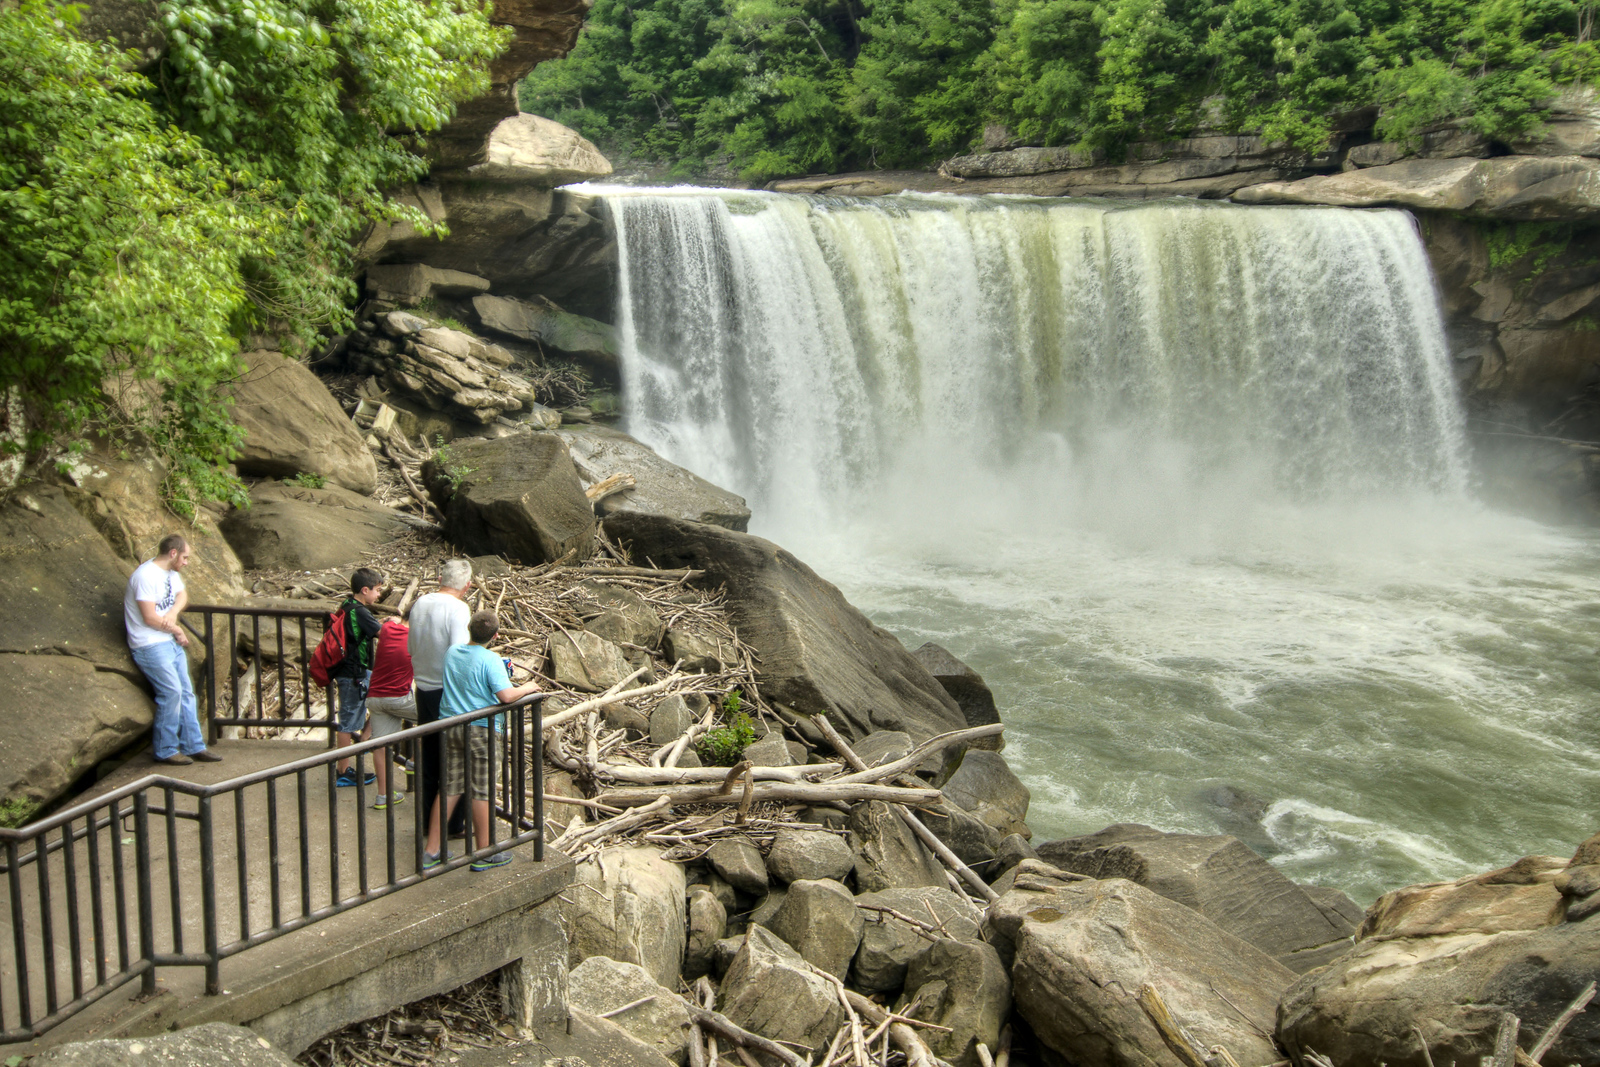 People admire the falls from the Lower Overlook at Cumberland Falls State Resort Park in Corbin, KY on Tuesday, May 28, 2013. Copyright 2013 Jason Barnette